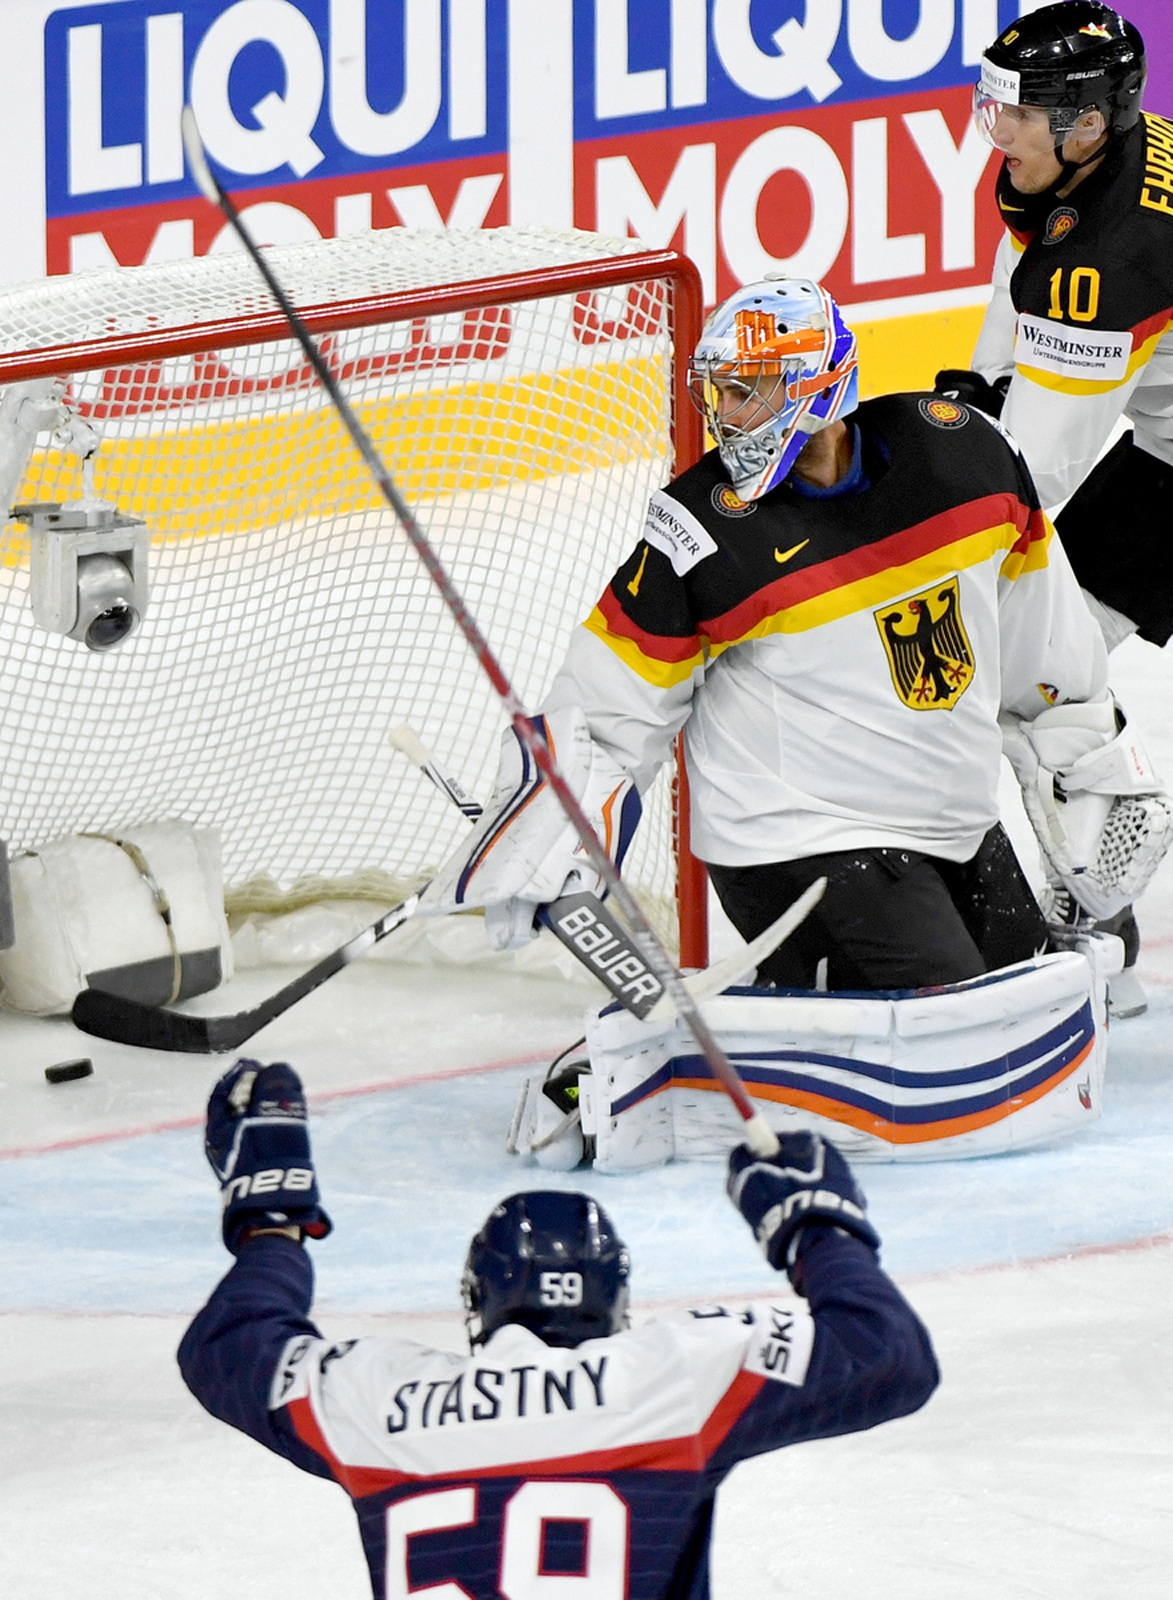 hockey wm live